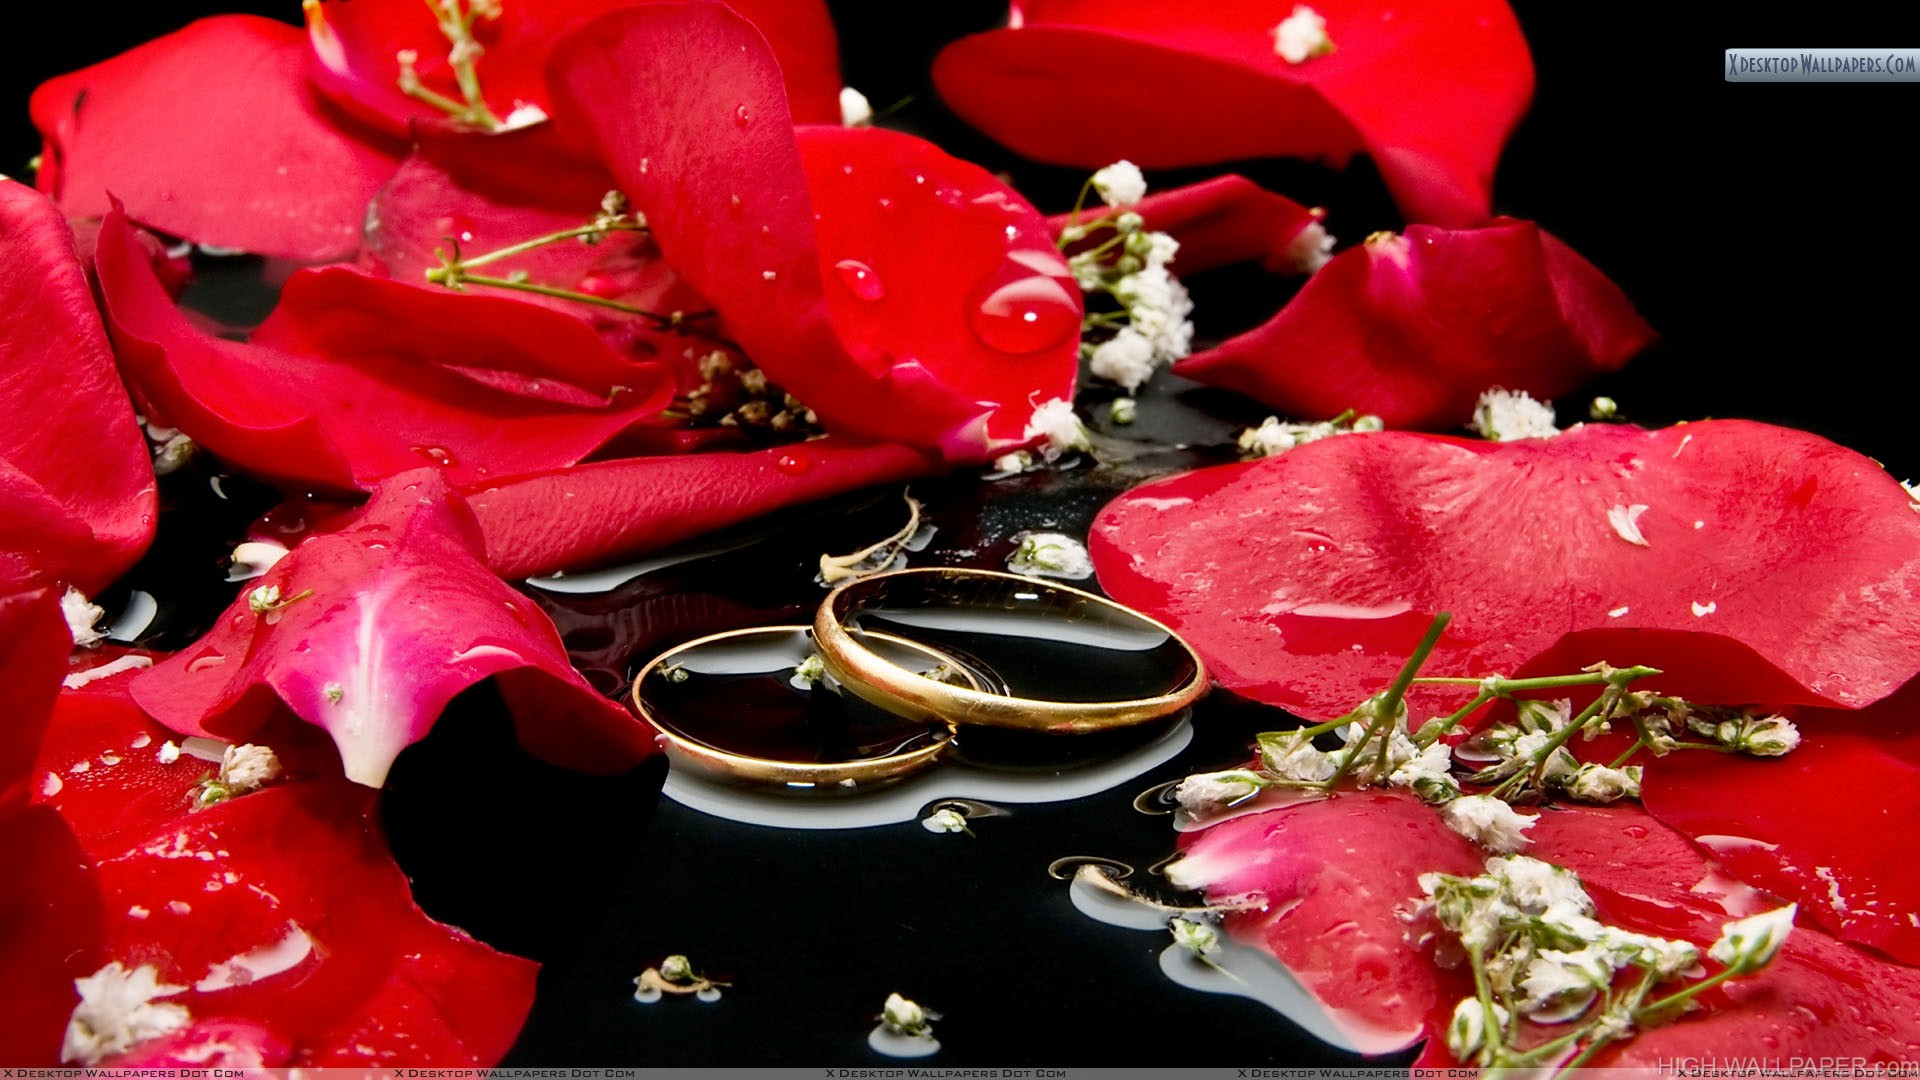 Wedding Rings With Red Rose And Water HD Wallpaper